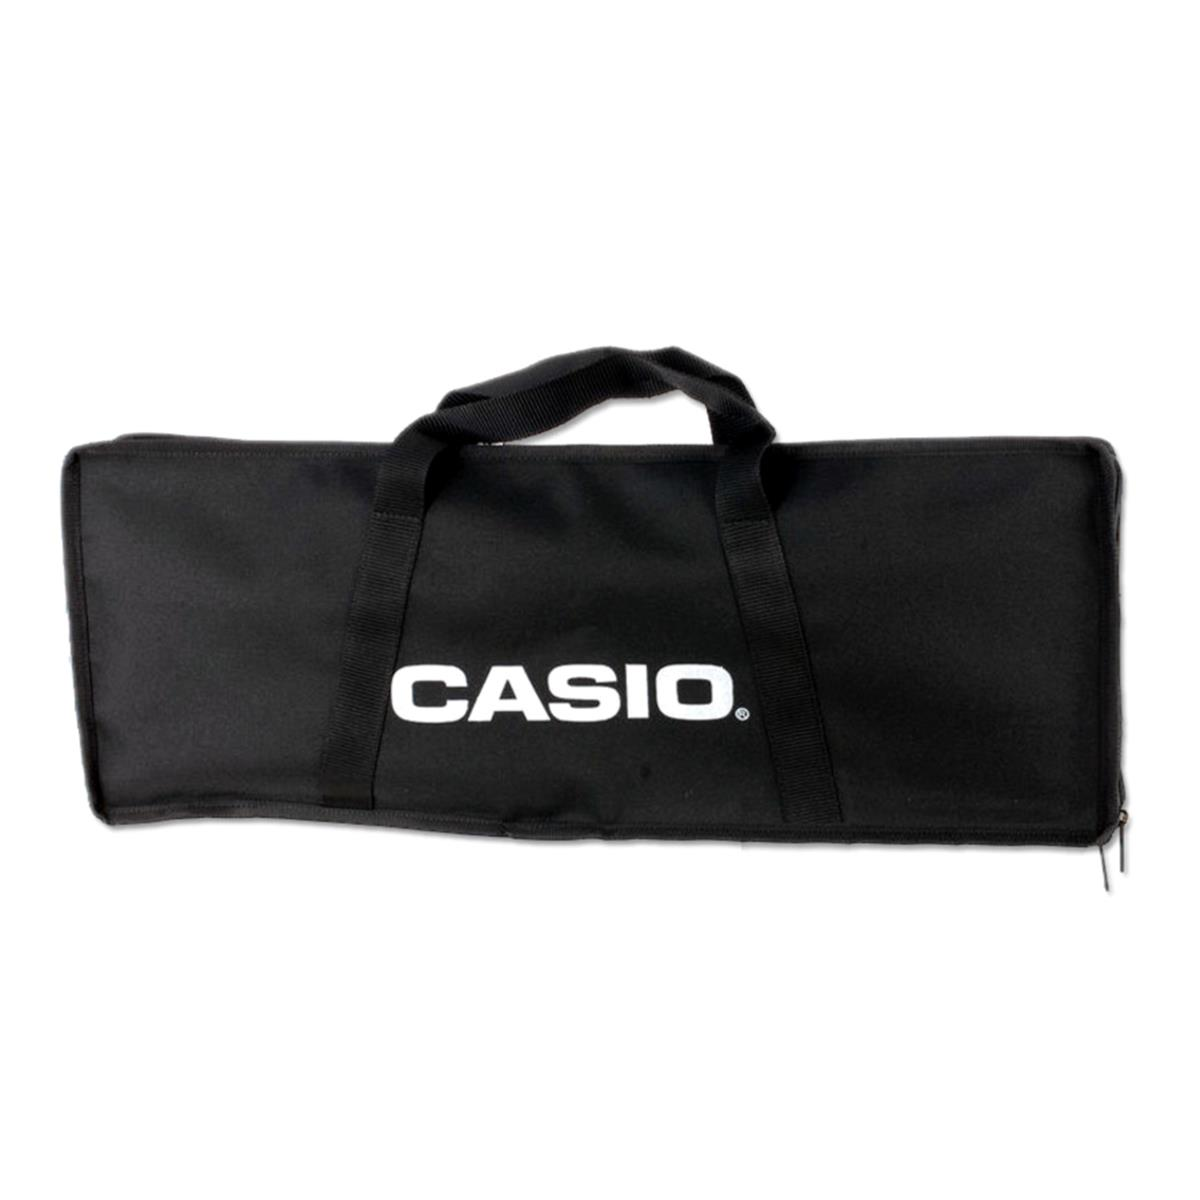 CASIO-MINI-KEYBOARD-BAG-BLACK-CUSTODIA-PER-SA-46-SA-76-sku-13400